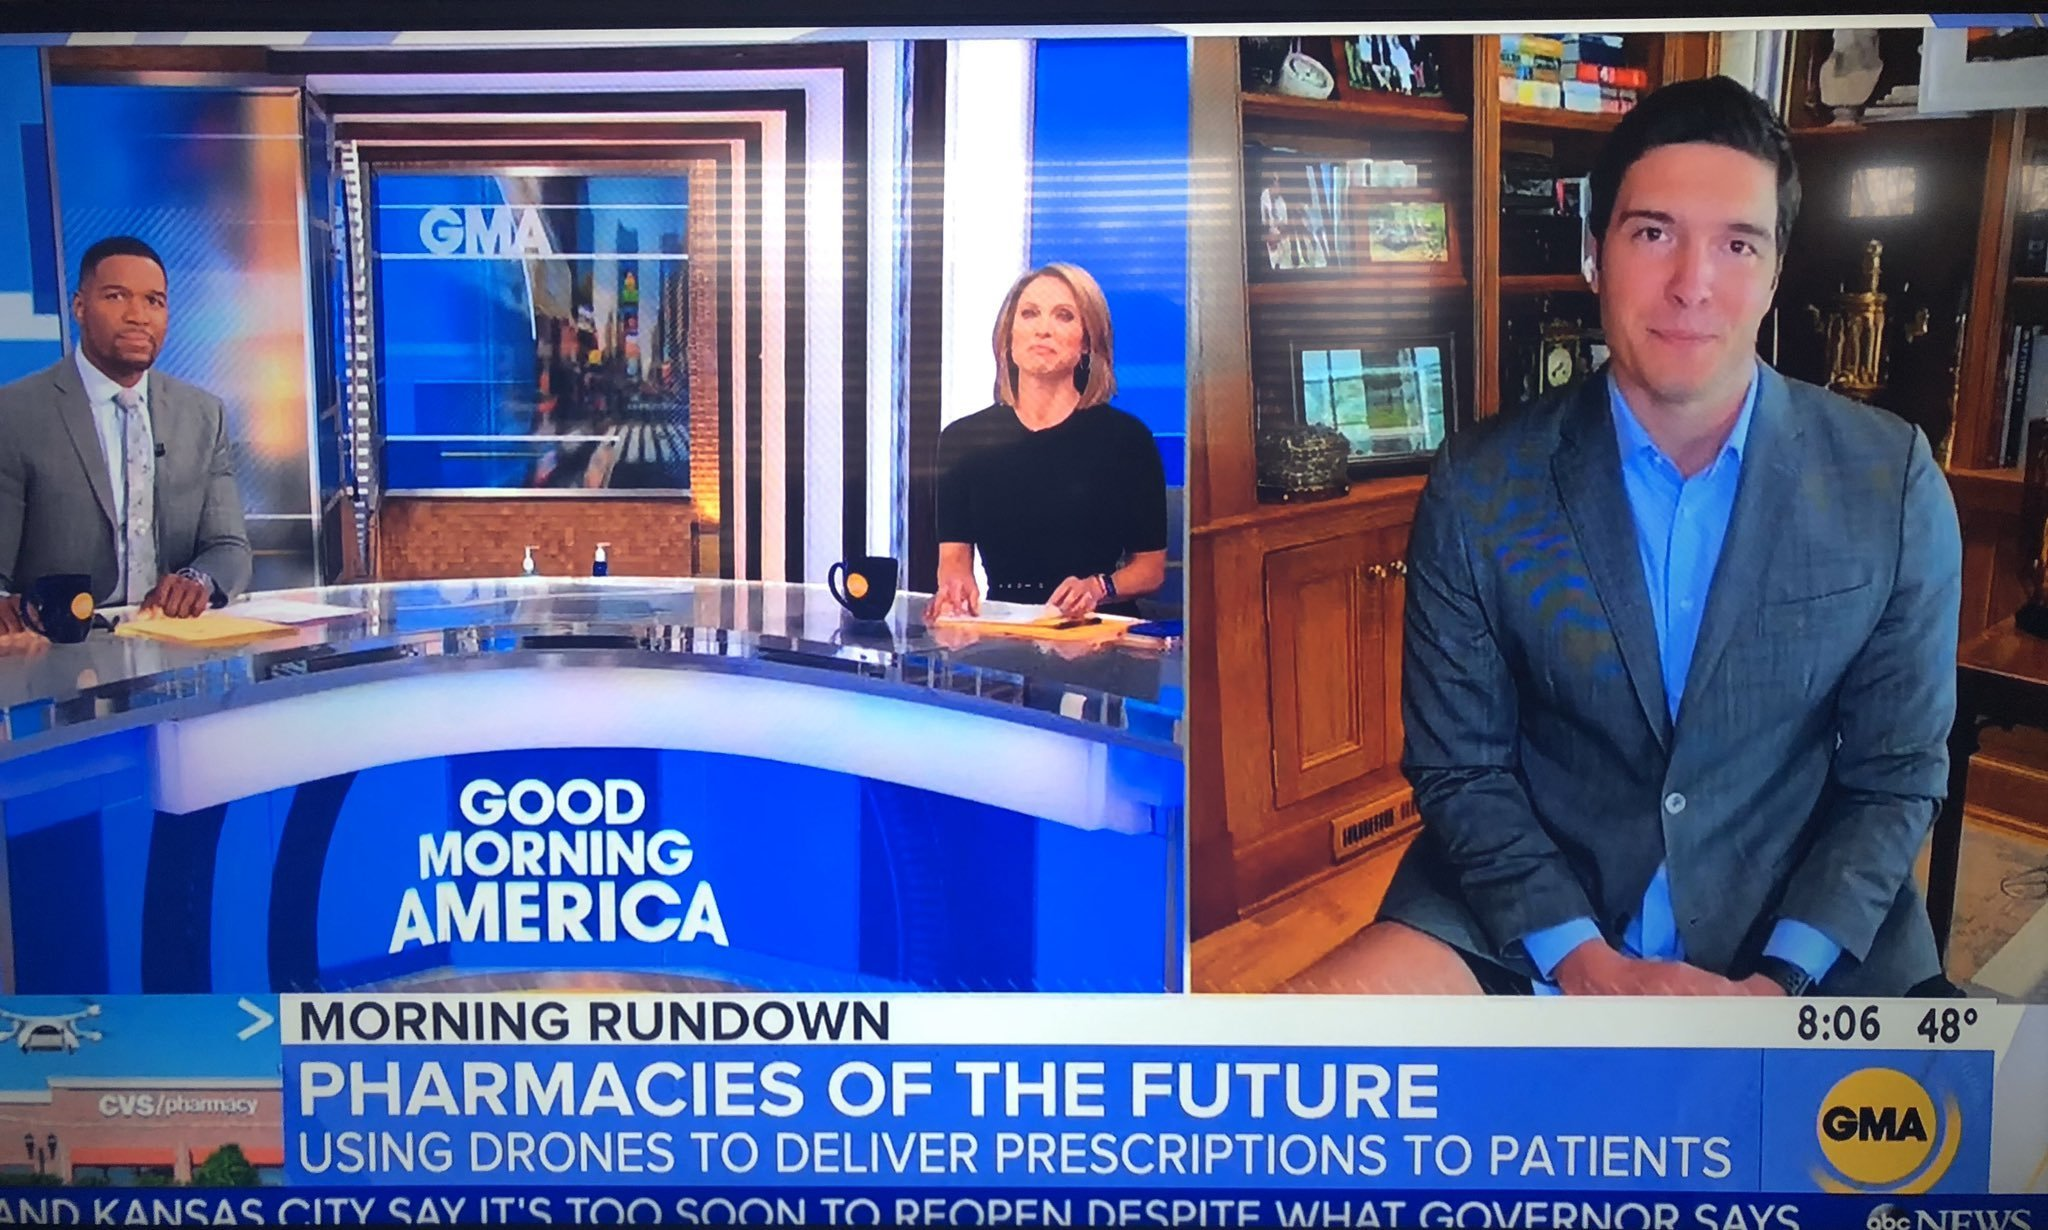 ABC reporter goes pantsless during Zoom appearance on 'Good Morning America'